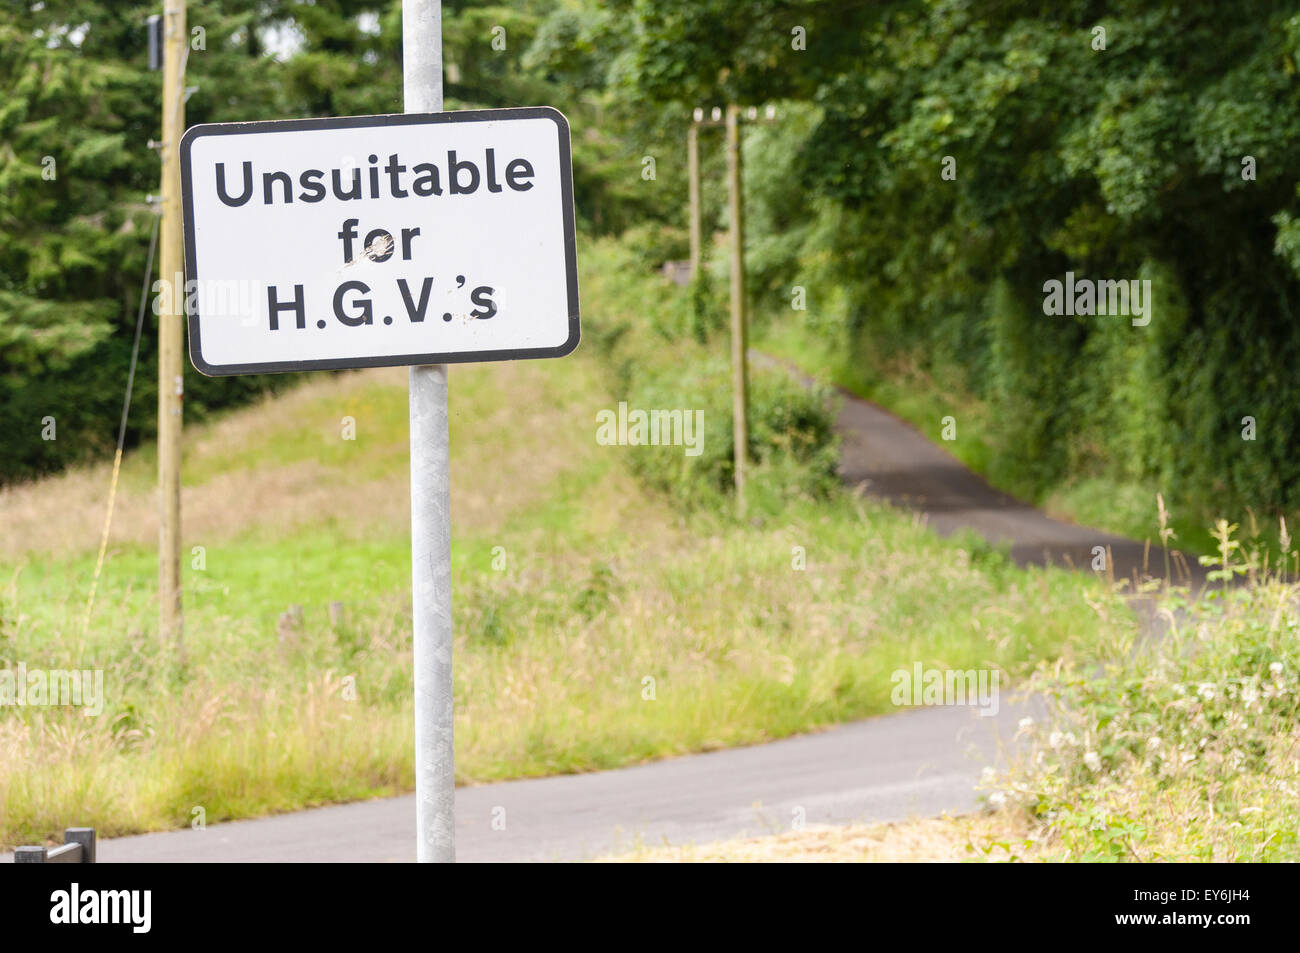 Sign warning that the road is unsuitable for heavy goods vehicles, with an unnecessary apostrophe - Stock Image